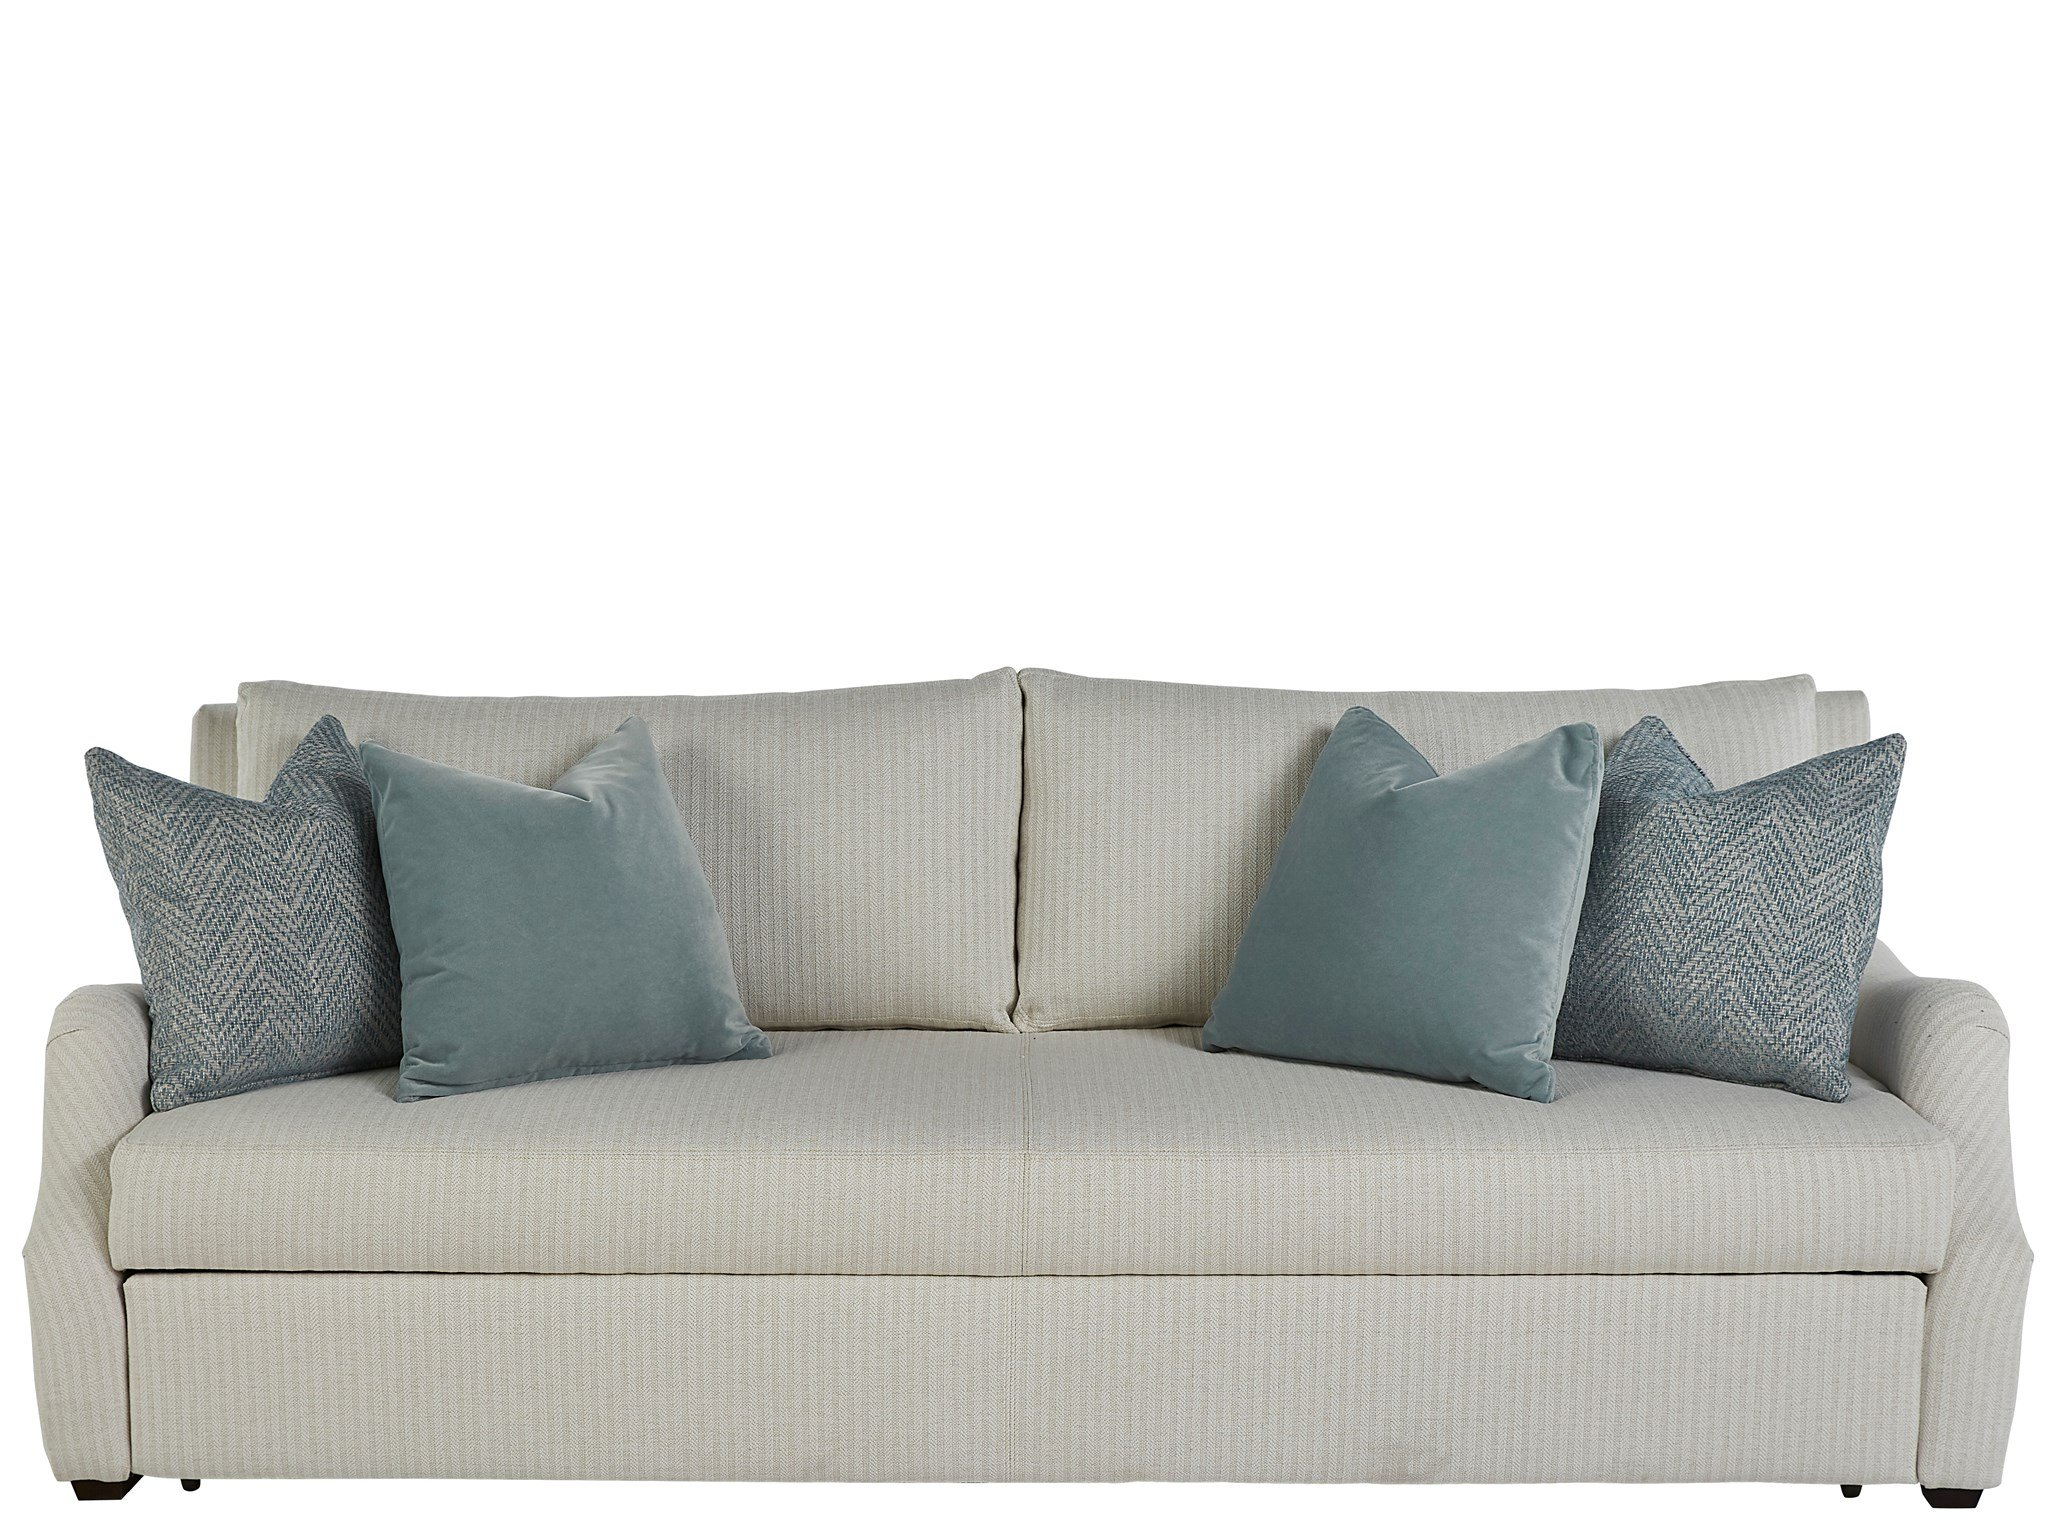 Atlantic Sleeper Sofa